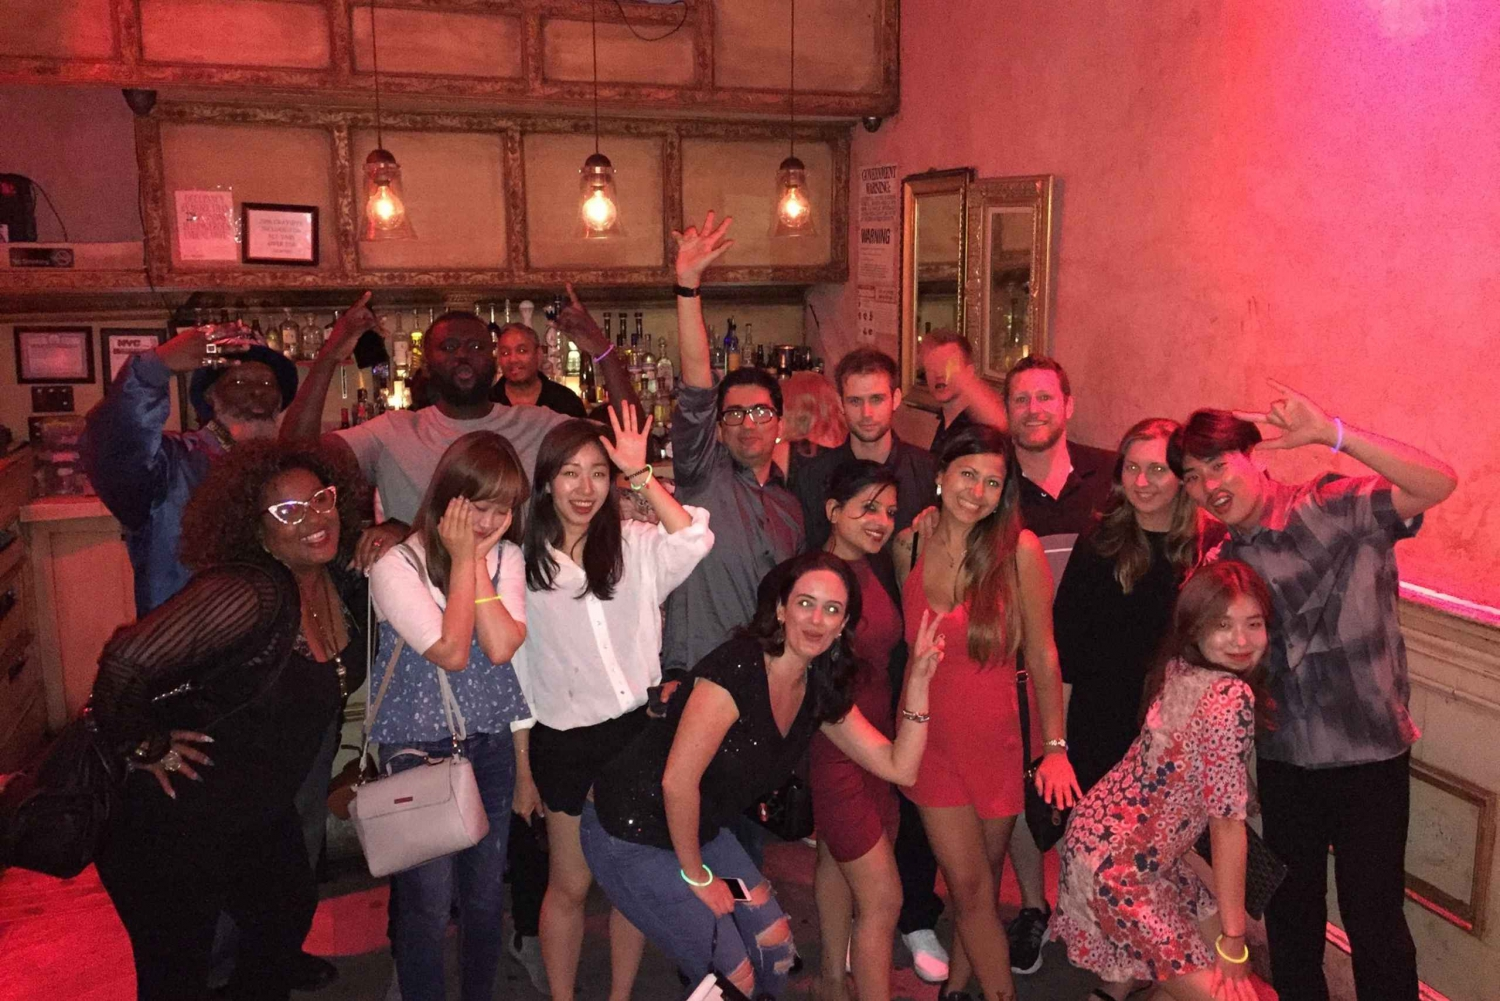 New York City: Hosted Group Night Out Experience